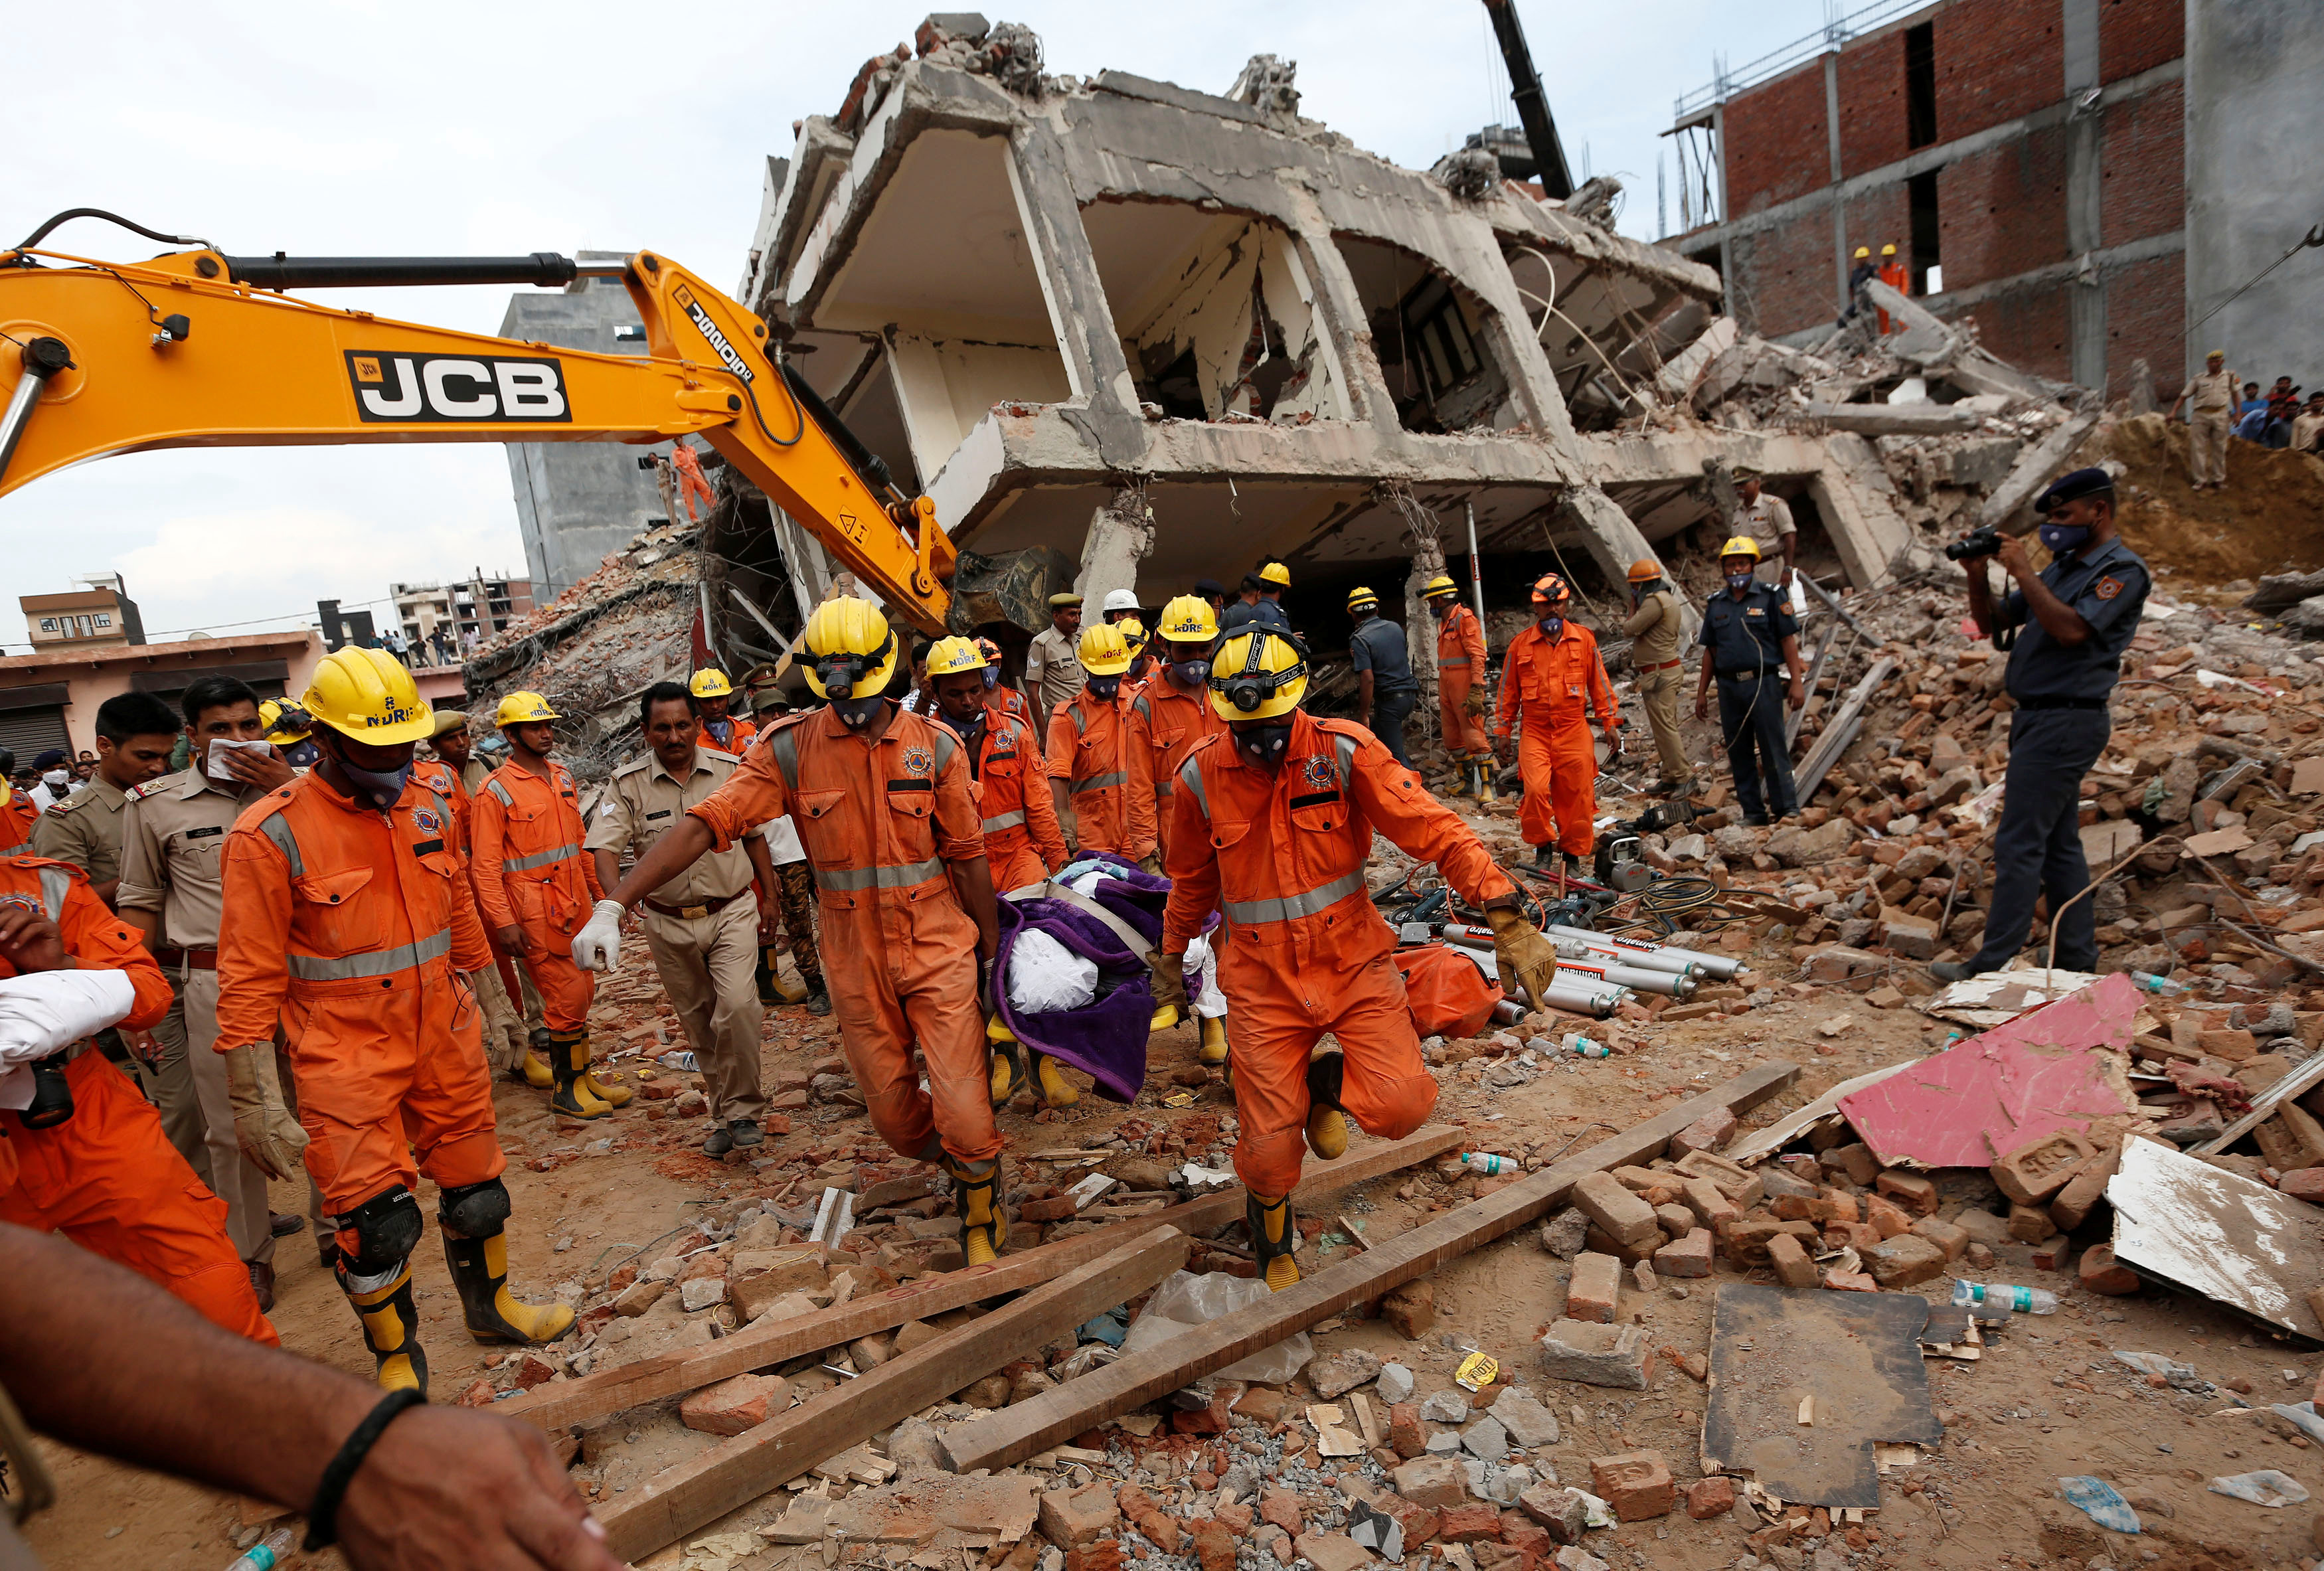 Rescue workers carry the body of a victim at the site of a collapsed residential building at Shah Beri village in Greater Noida, India July 18, 2018. Photo: REUTERS